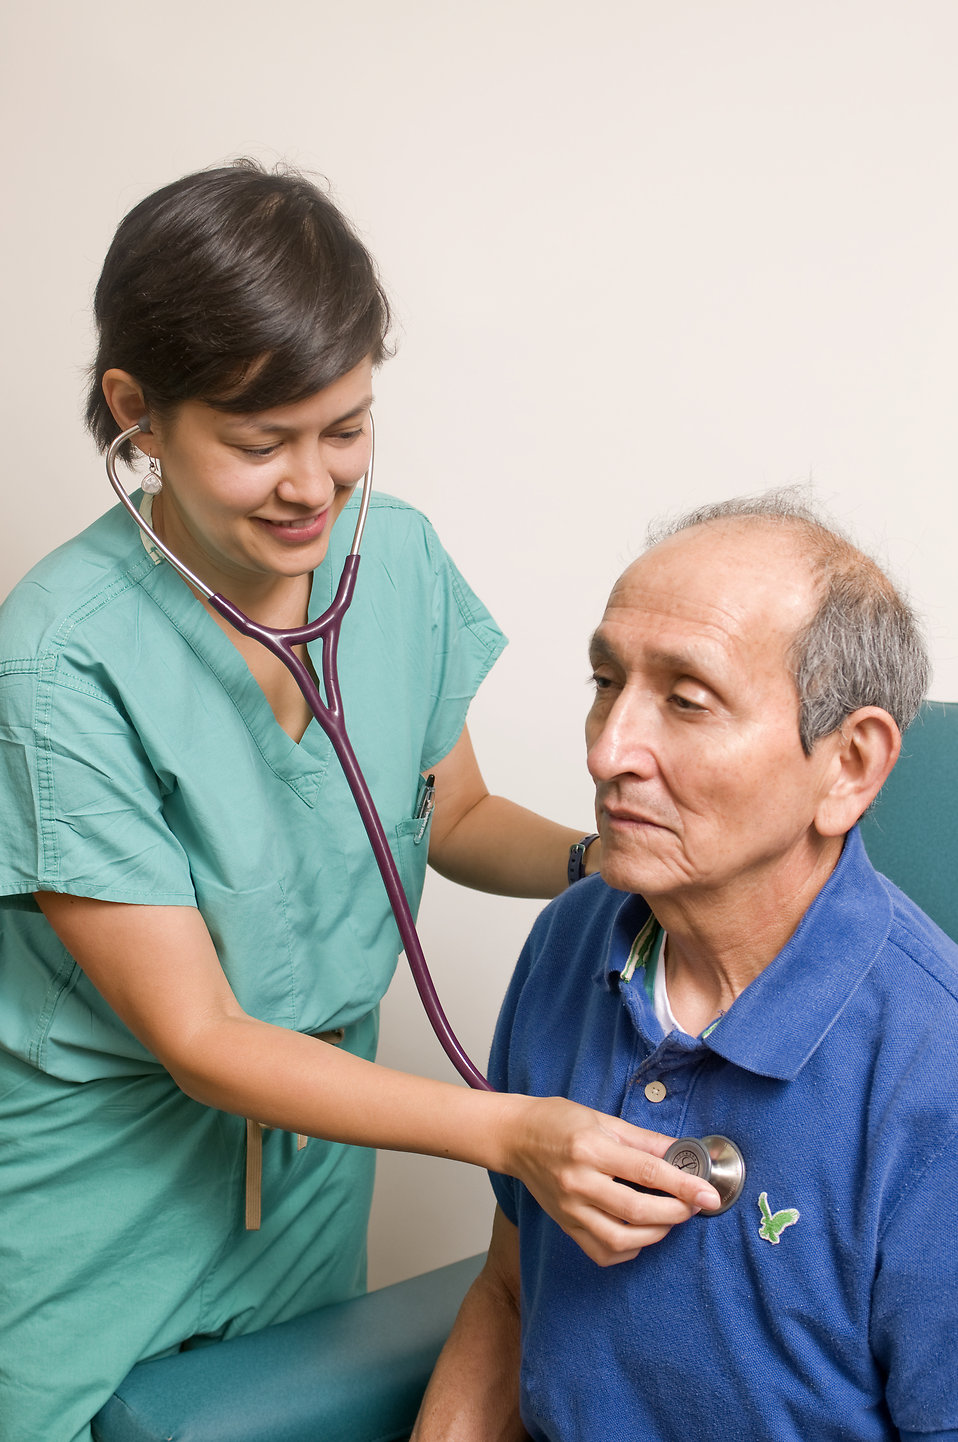 A female doctor examining an elderly male patient : Free Stock Photo